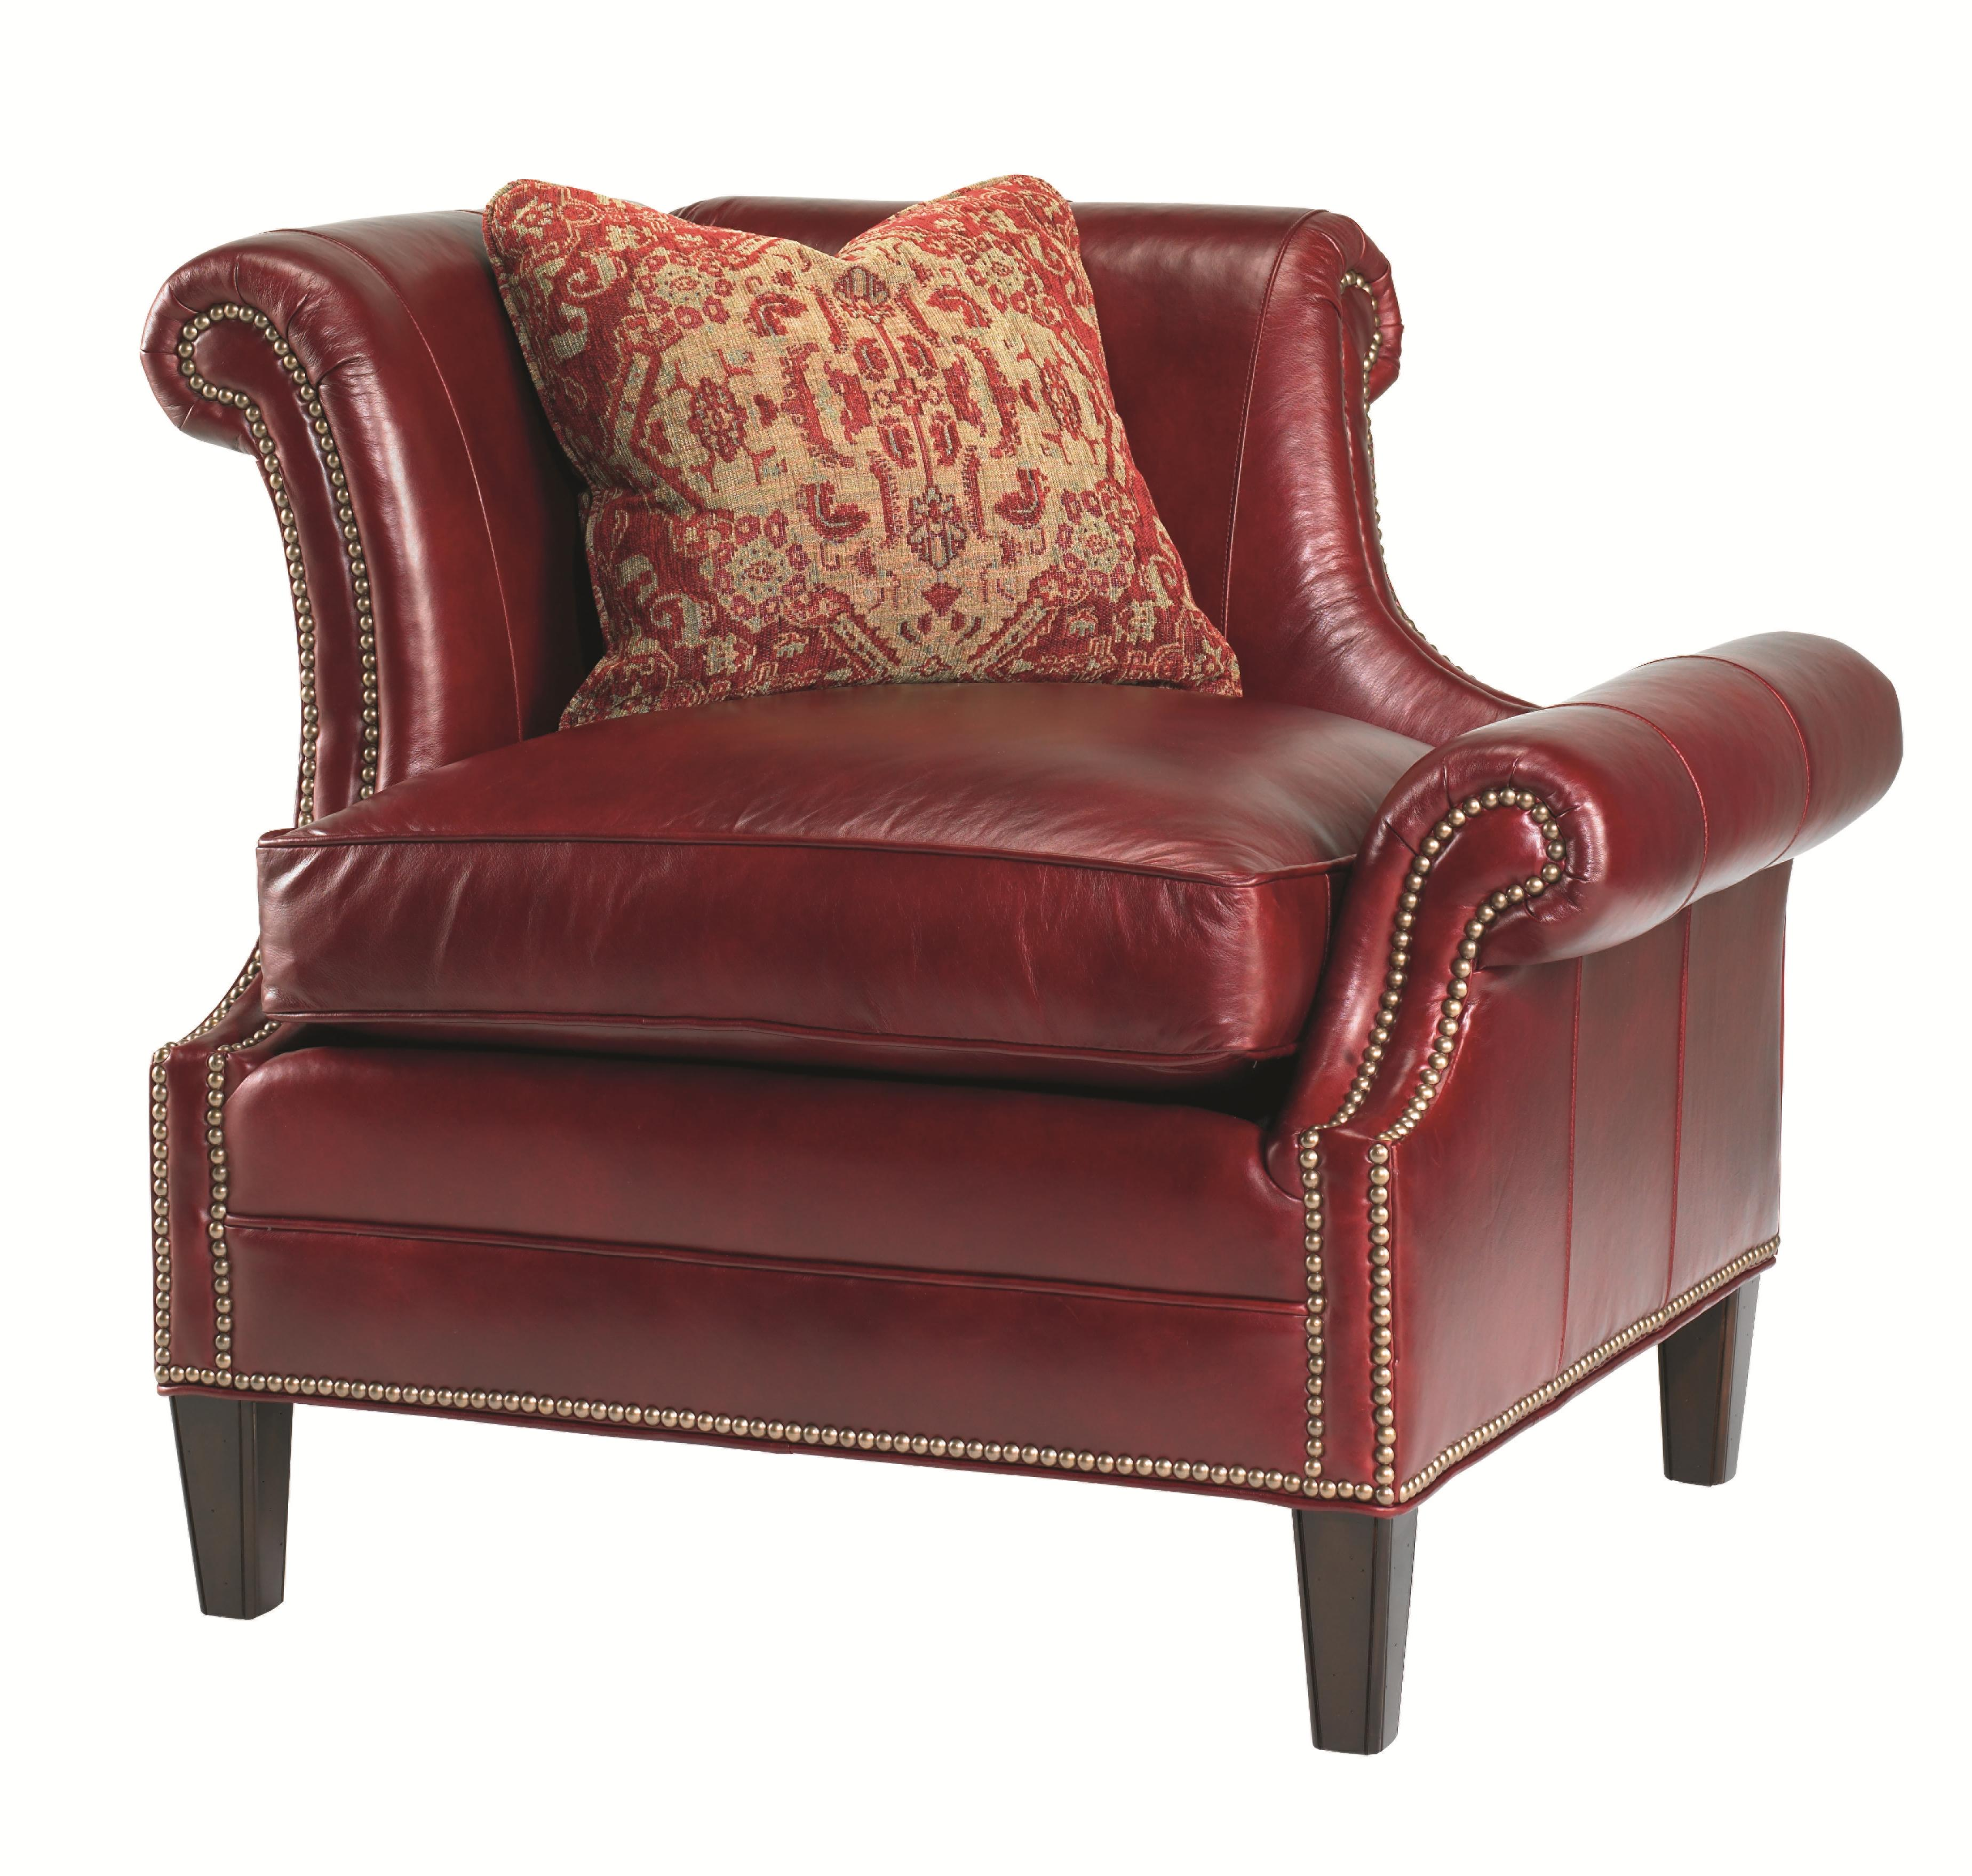 Lexington Leather Braddock Laf Upholstered Chair by Lexington at Johnny Janosik